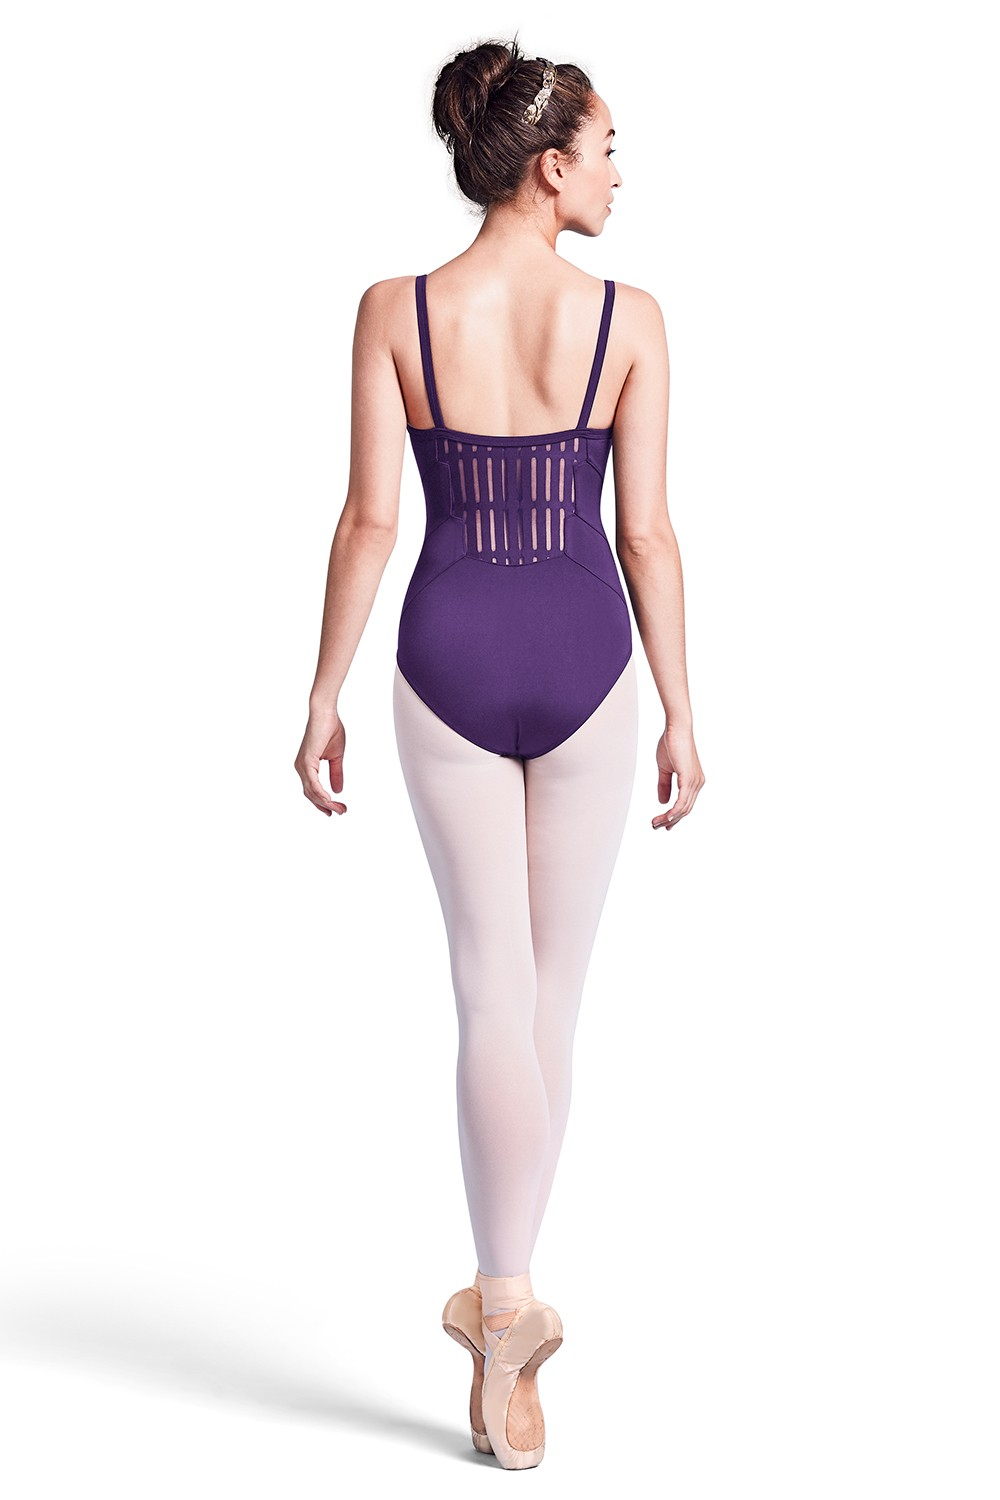 Justaucorps Bretelles Larges Womens Camisole Leotards